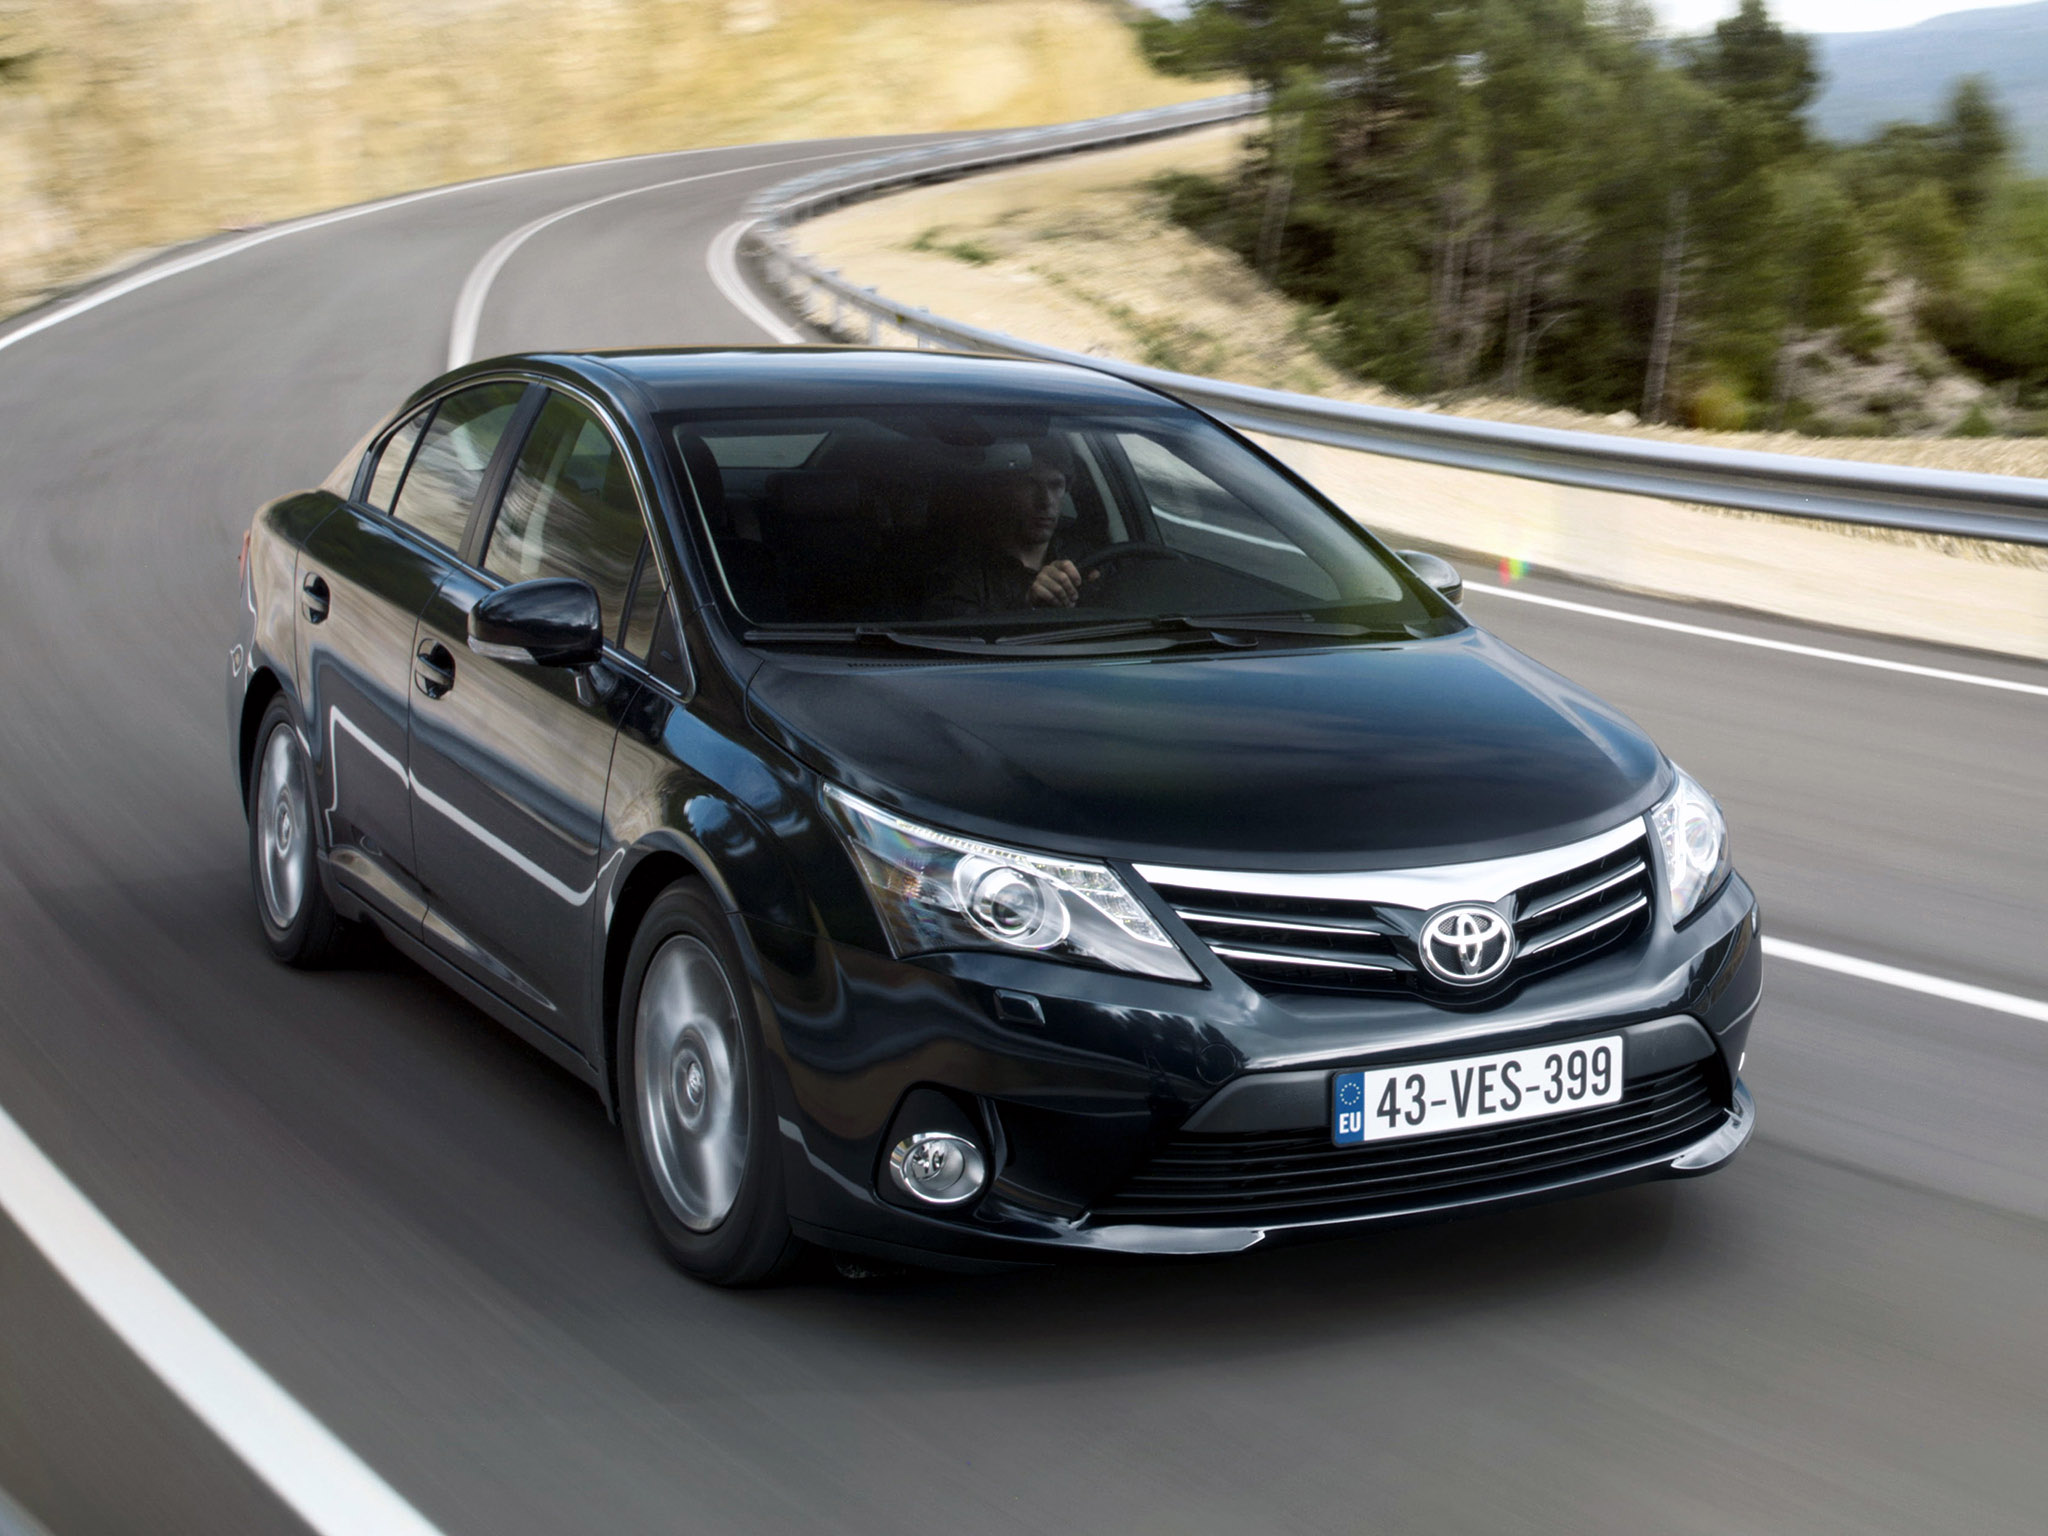 2011 toyota avensis photos informations articles bestcarmag com rh bestcarmag com Toyota Avensis 2010 Toyota Avensis 2010